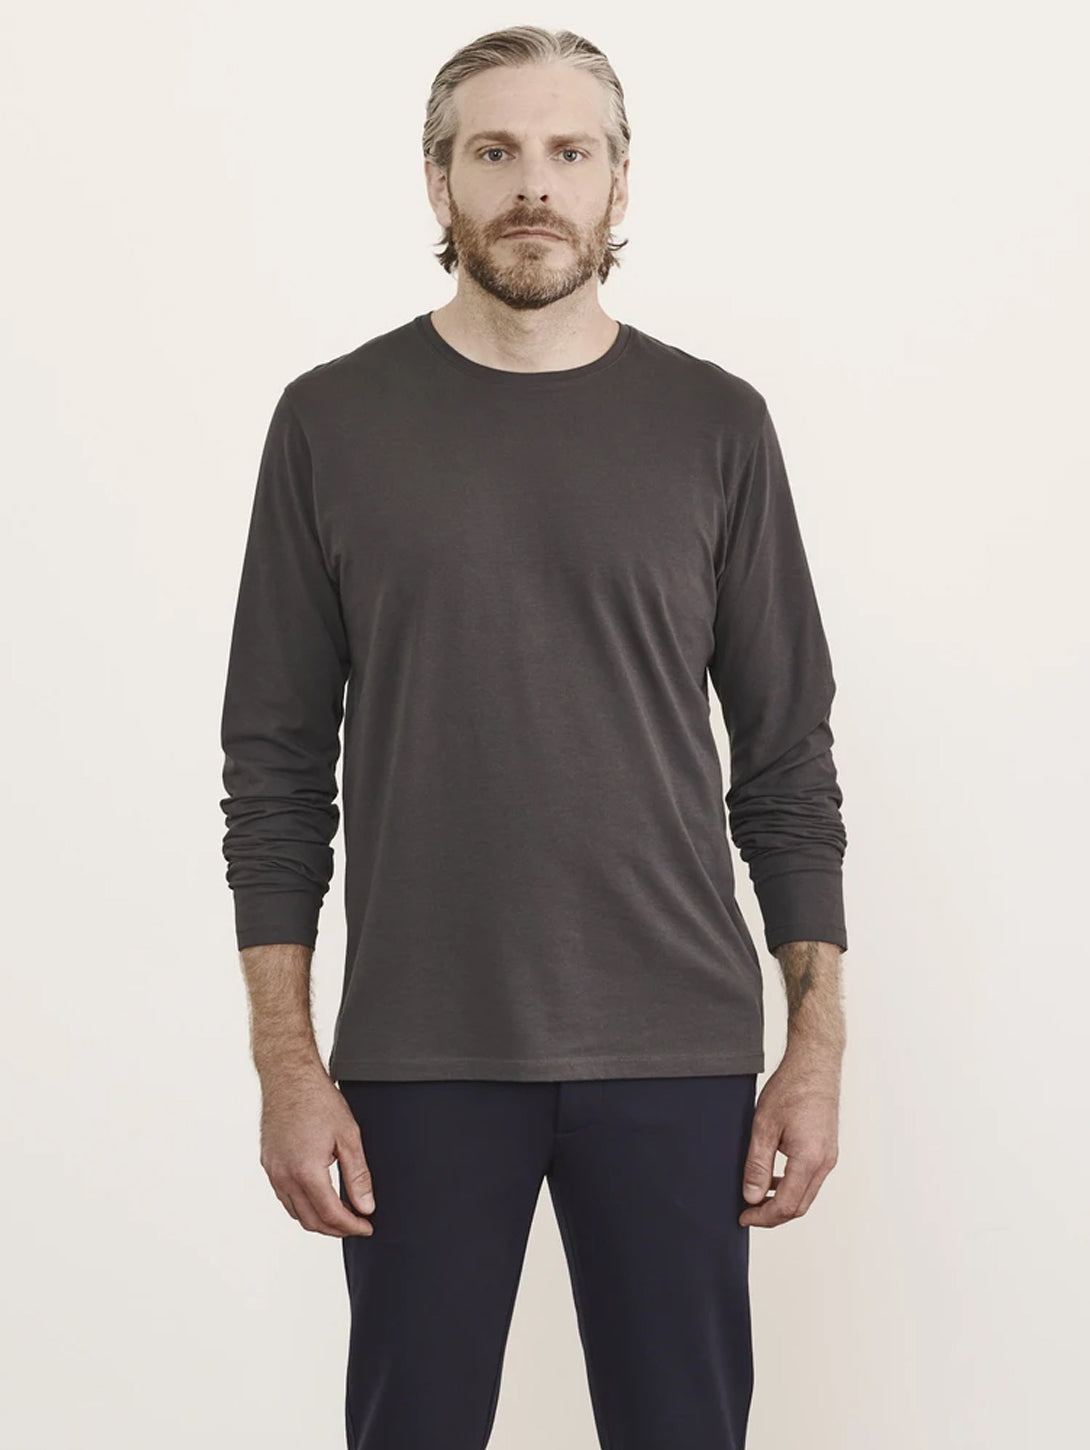 Pima Stretch Long Sleeve Crew Top - Carbon-Patrick Assaraf-Over the Rainbow